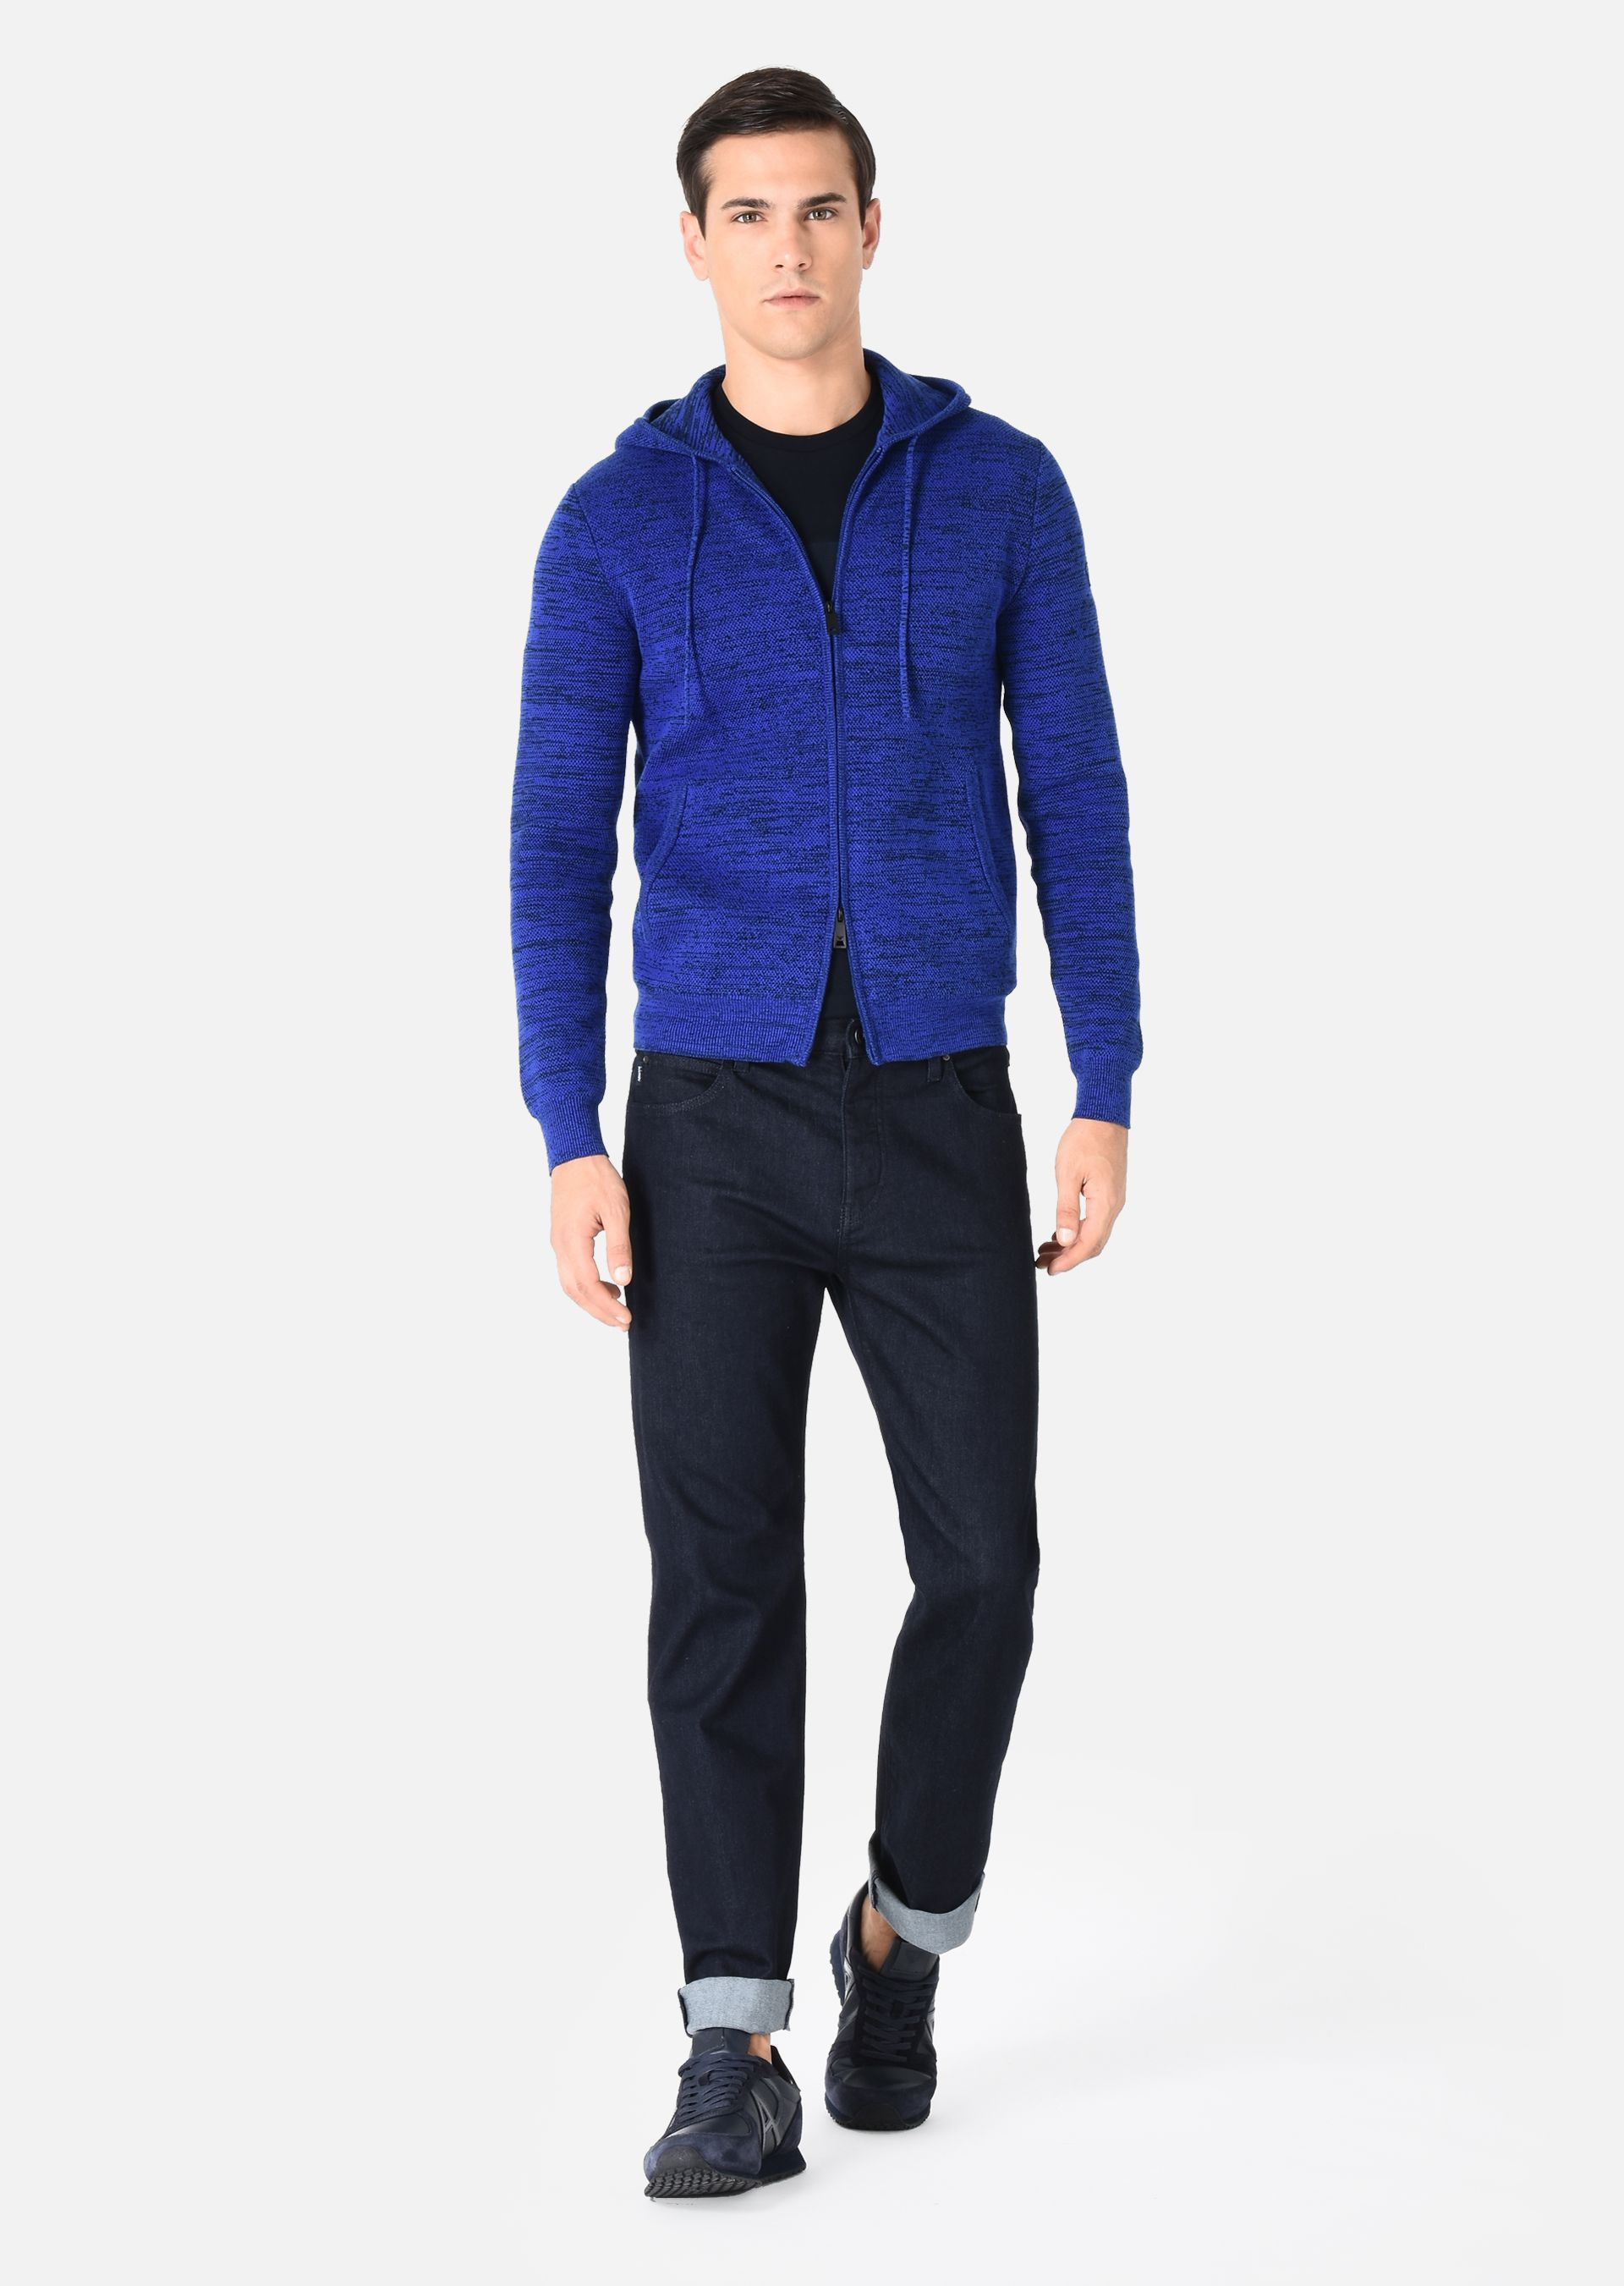 official-store-emporio-armani-knitwear-cardigans-on-armani